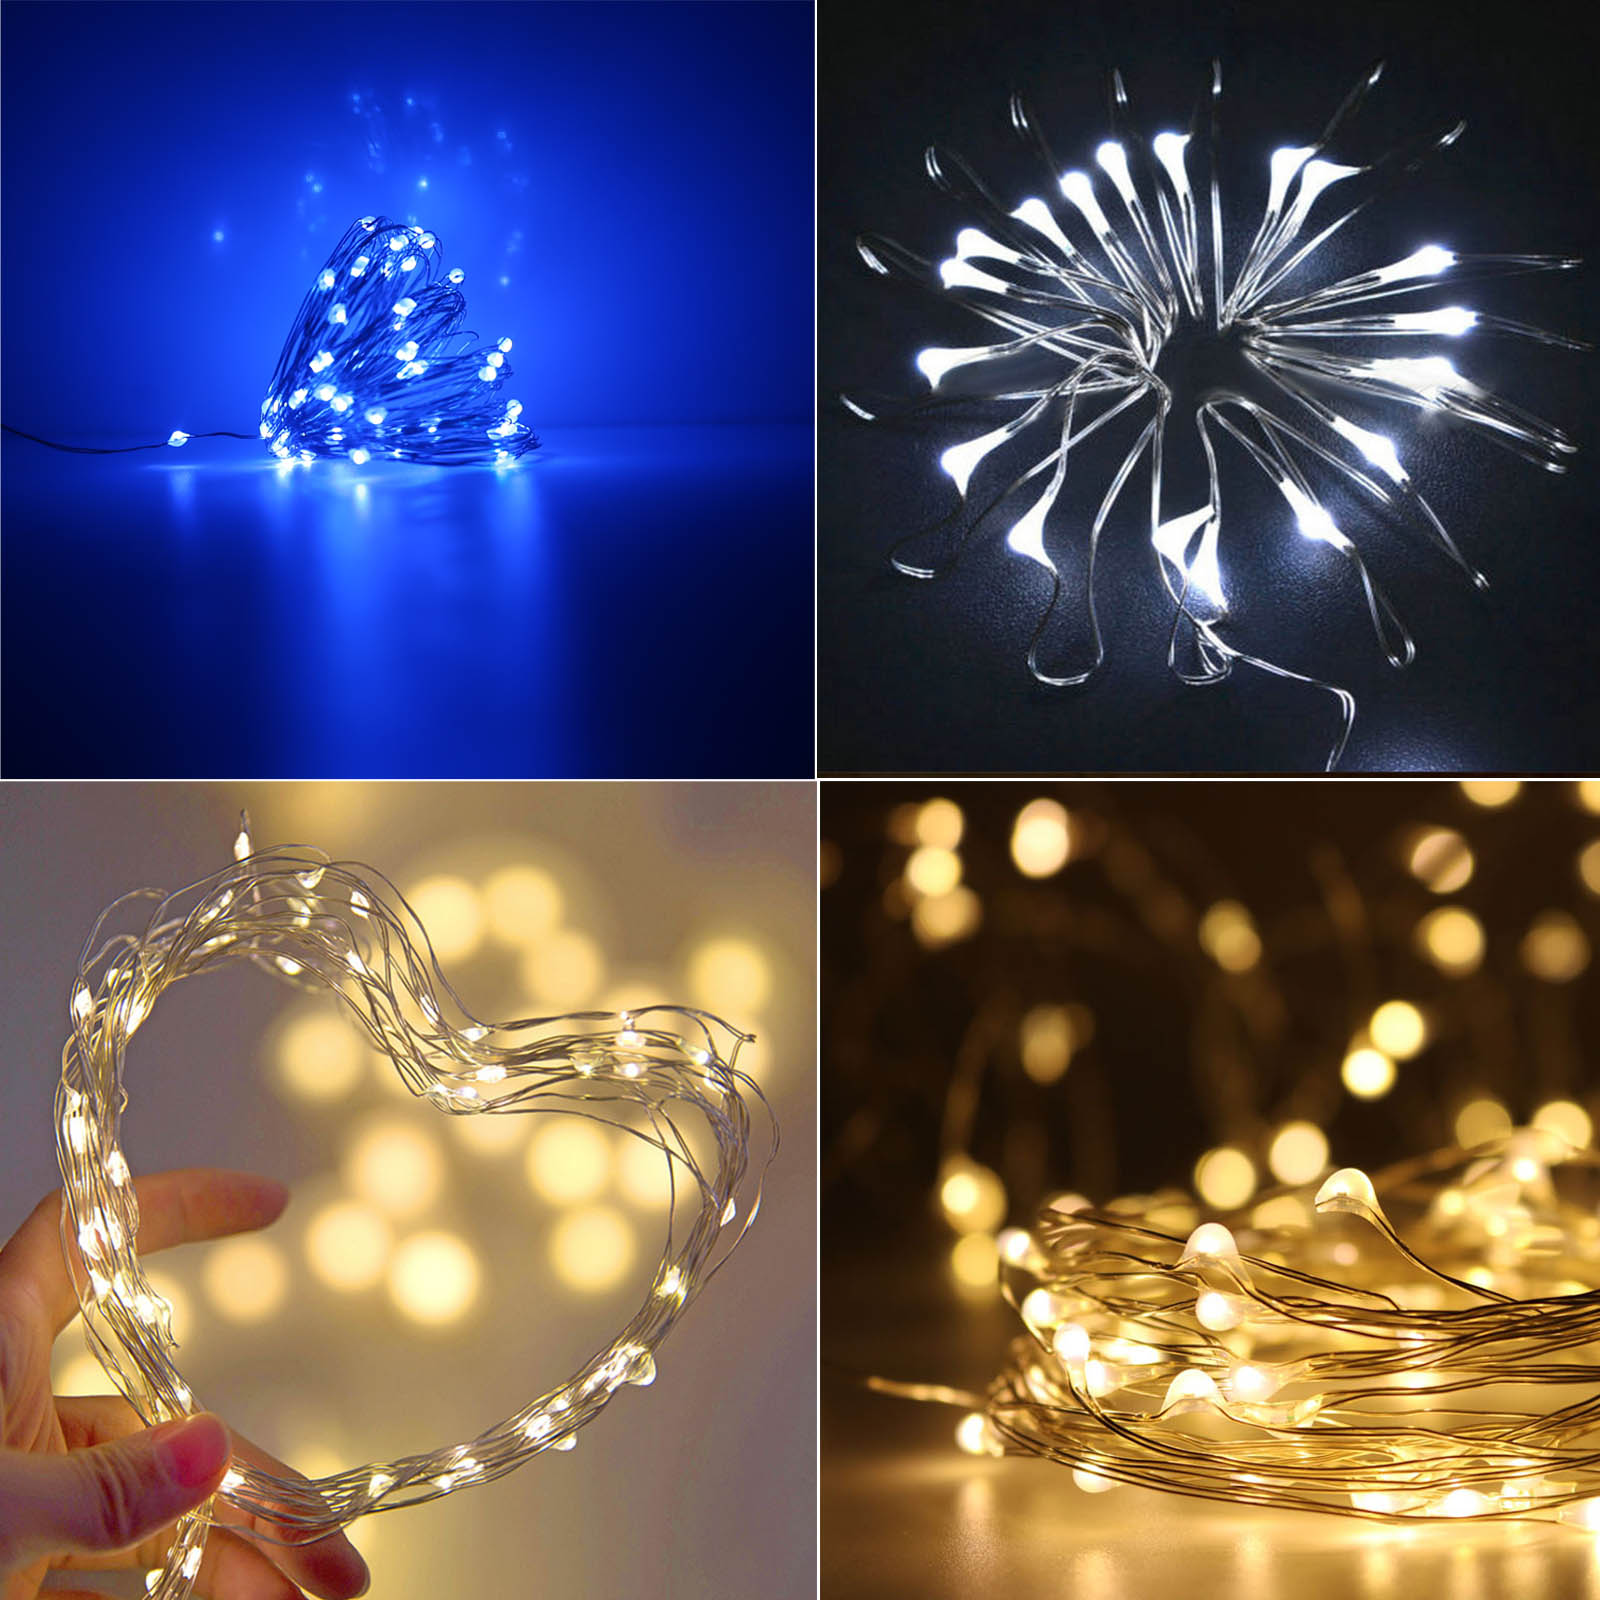 LED Copper <font><b>Wire</b></font> String Fairy Light 10M 5M 3M 2M 1M Garland Home Xmas Wedding Party Decor Powered by <font><b>Battery</b></font> USB LR44 <font><b>CR2032</b></font> New image